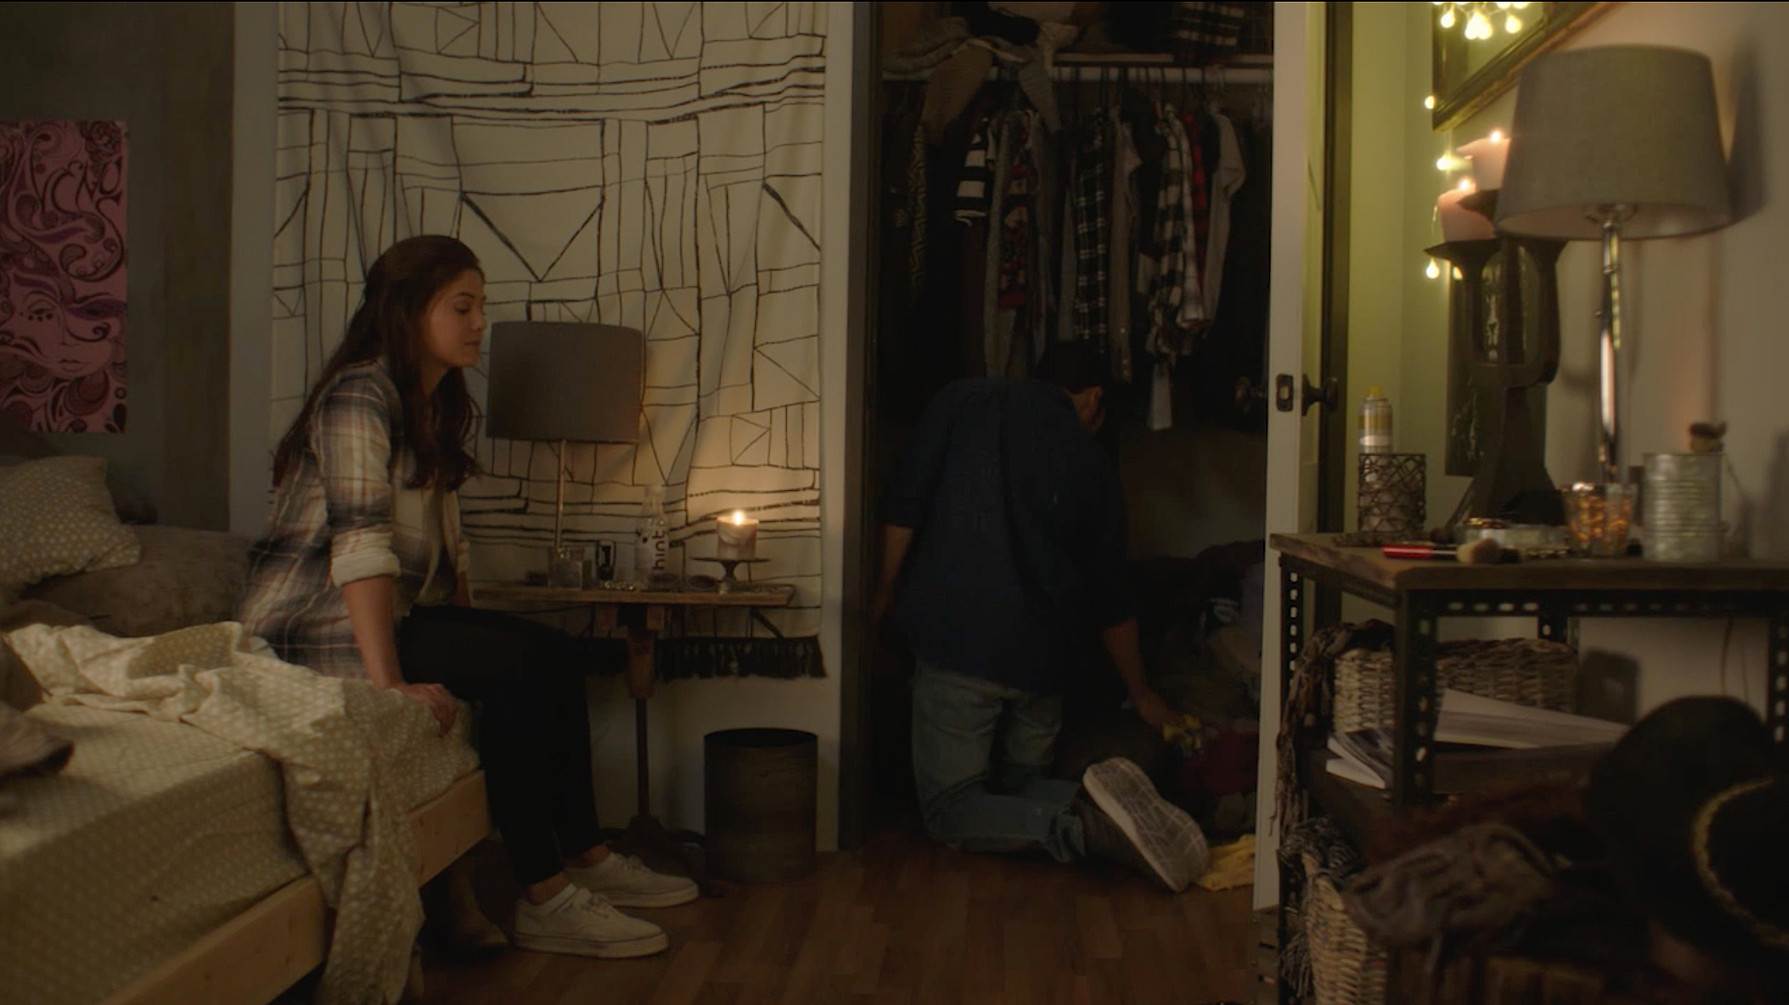 Film Still - Jess' Room